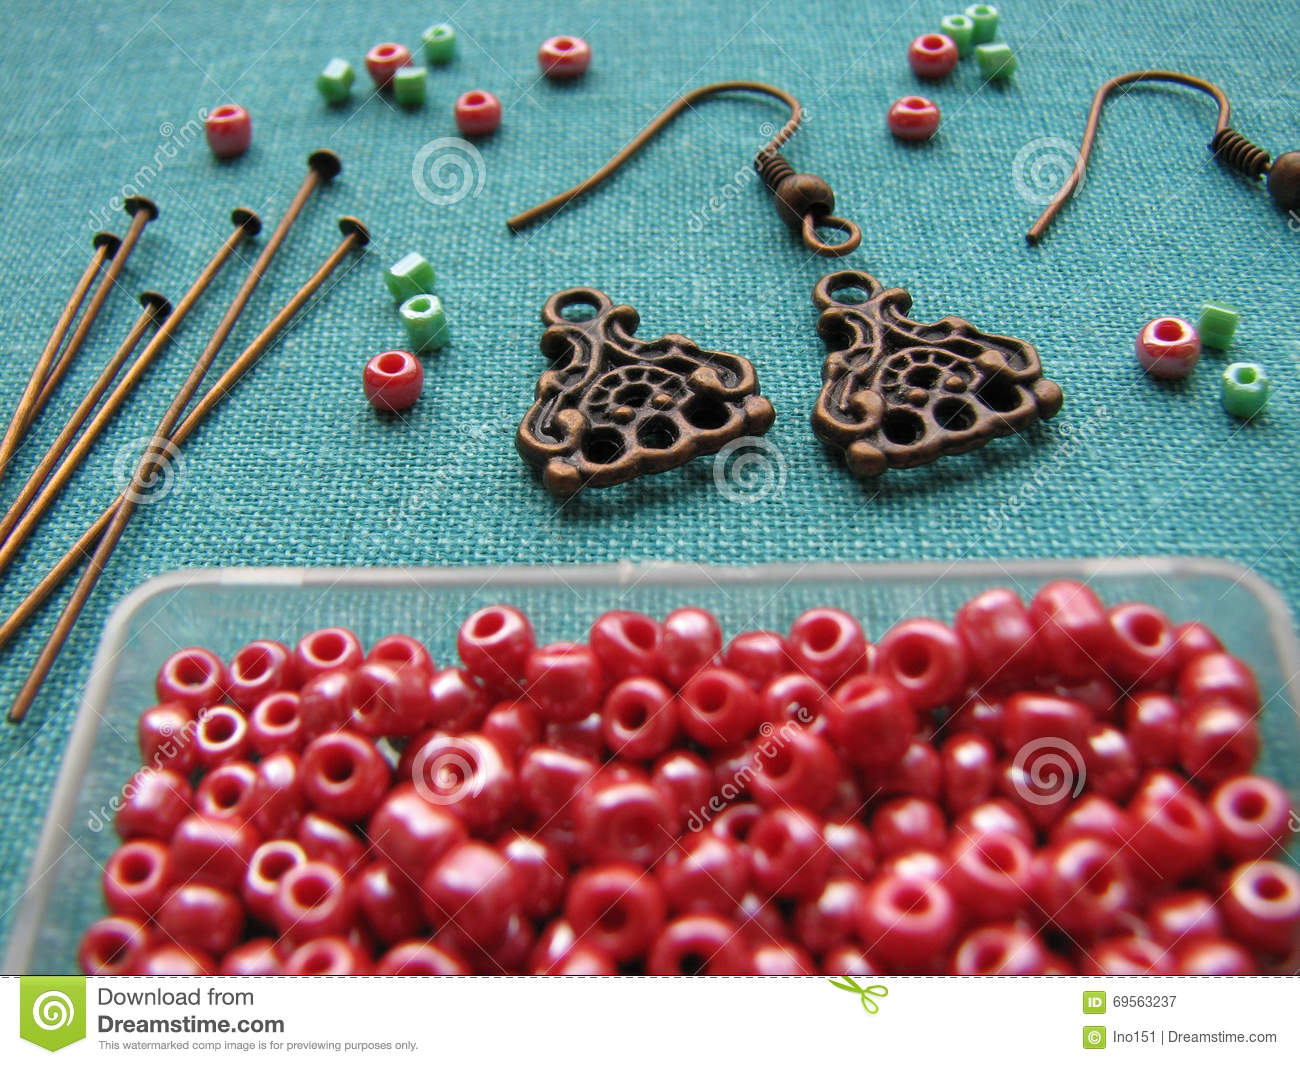 red beads and pieces for making earrings handmade jewelry stock  - red beads and pieces for making earrings handmade jewelry stock photo